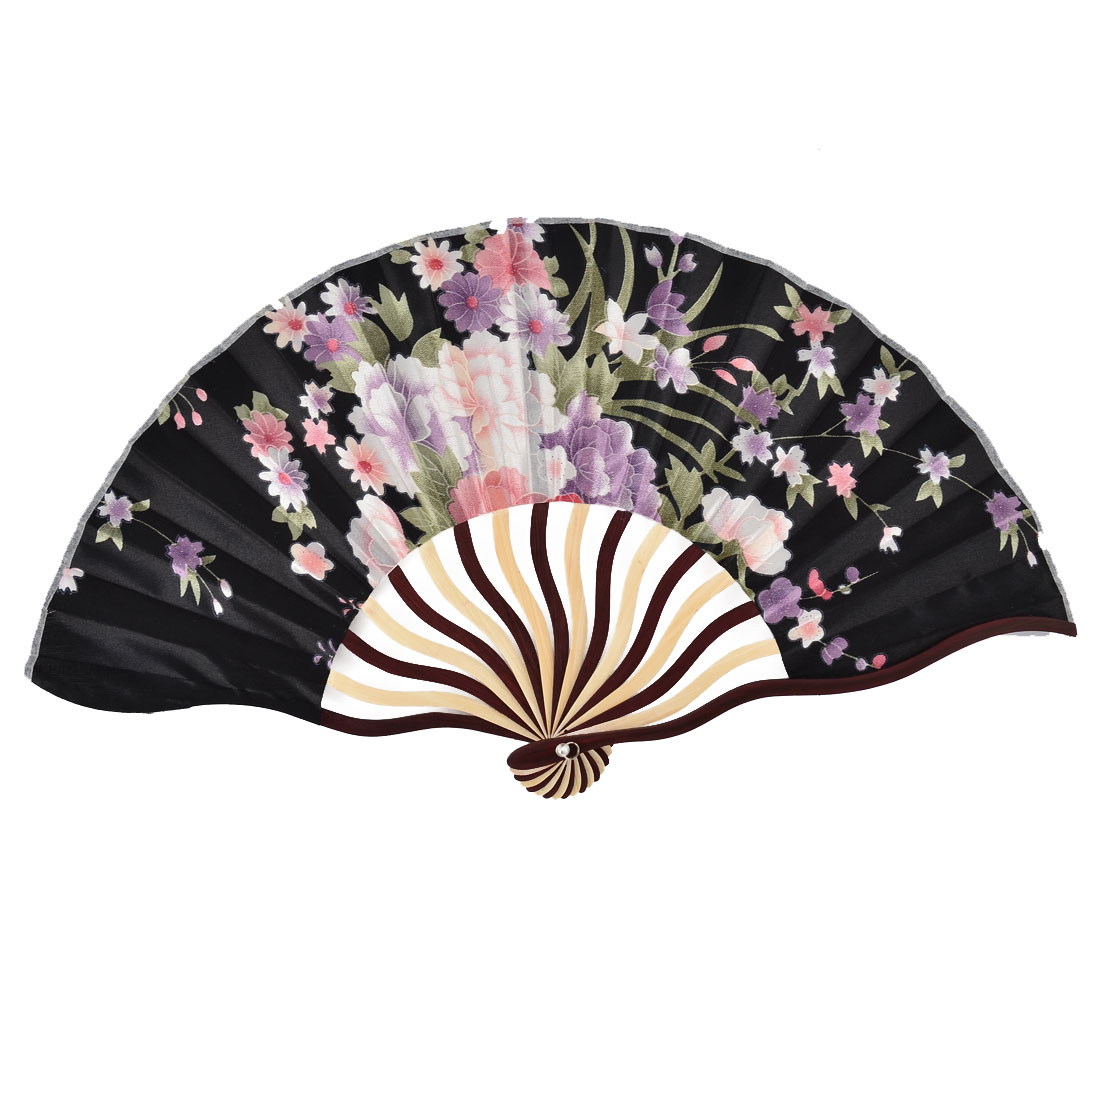 Bamboo Ribs Blossomy Pattern Summer Cool Portable Folding Hand Fan Black w Bag